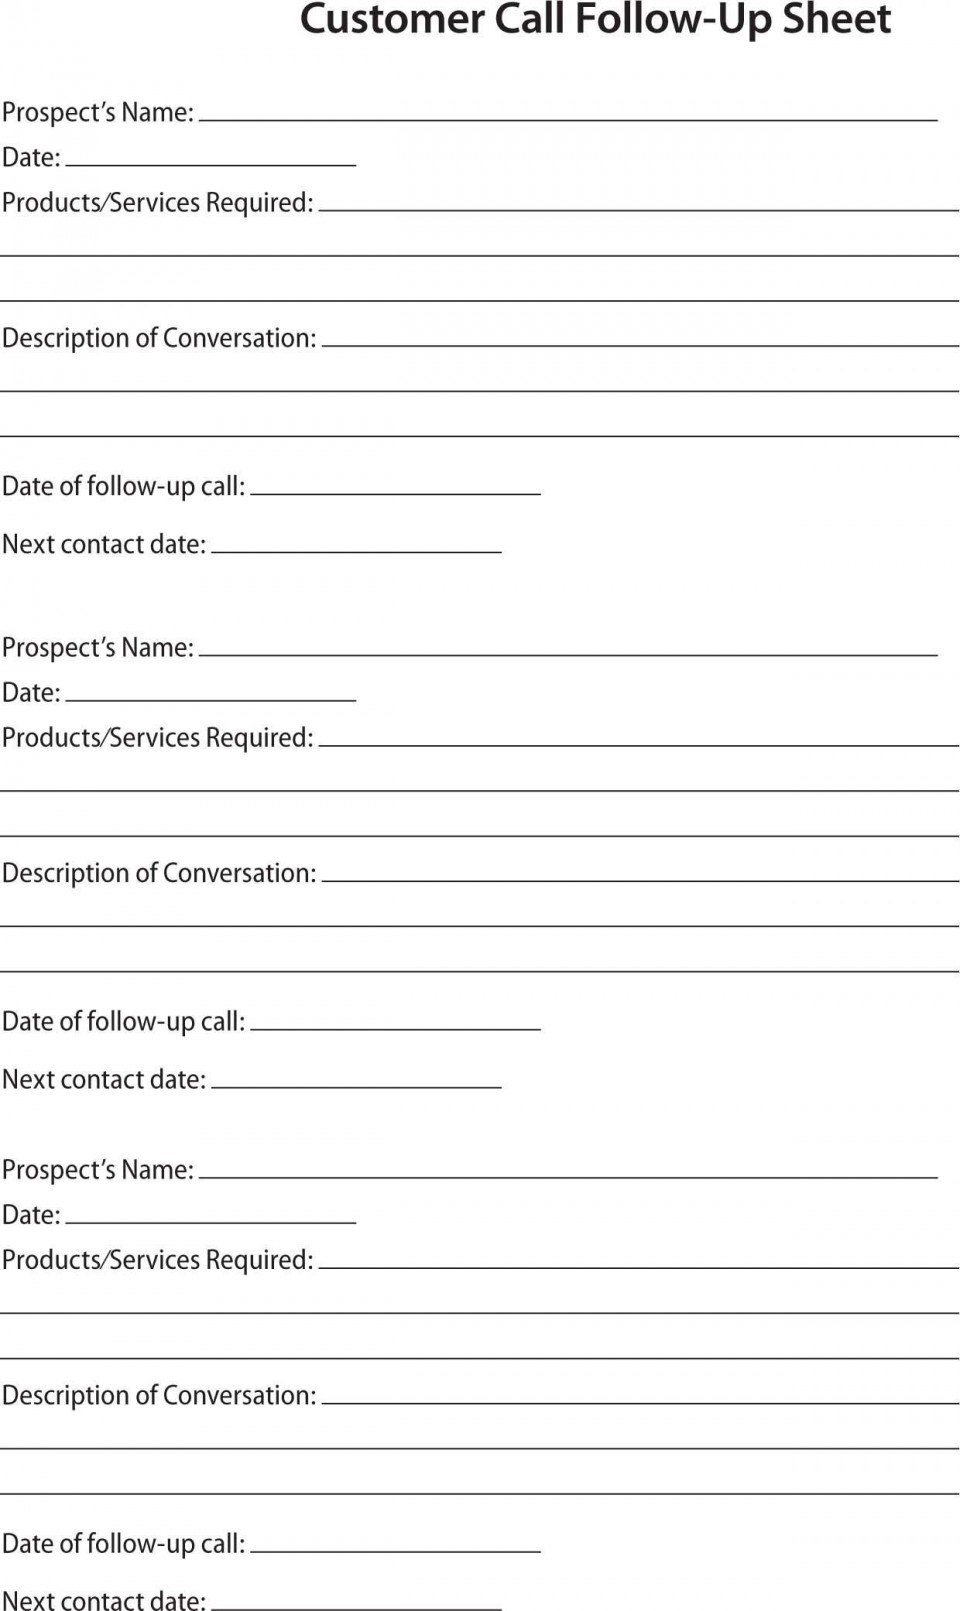 005 Exceptional Client Information Form Template Excel Inspiration 960